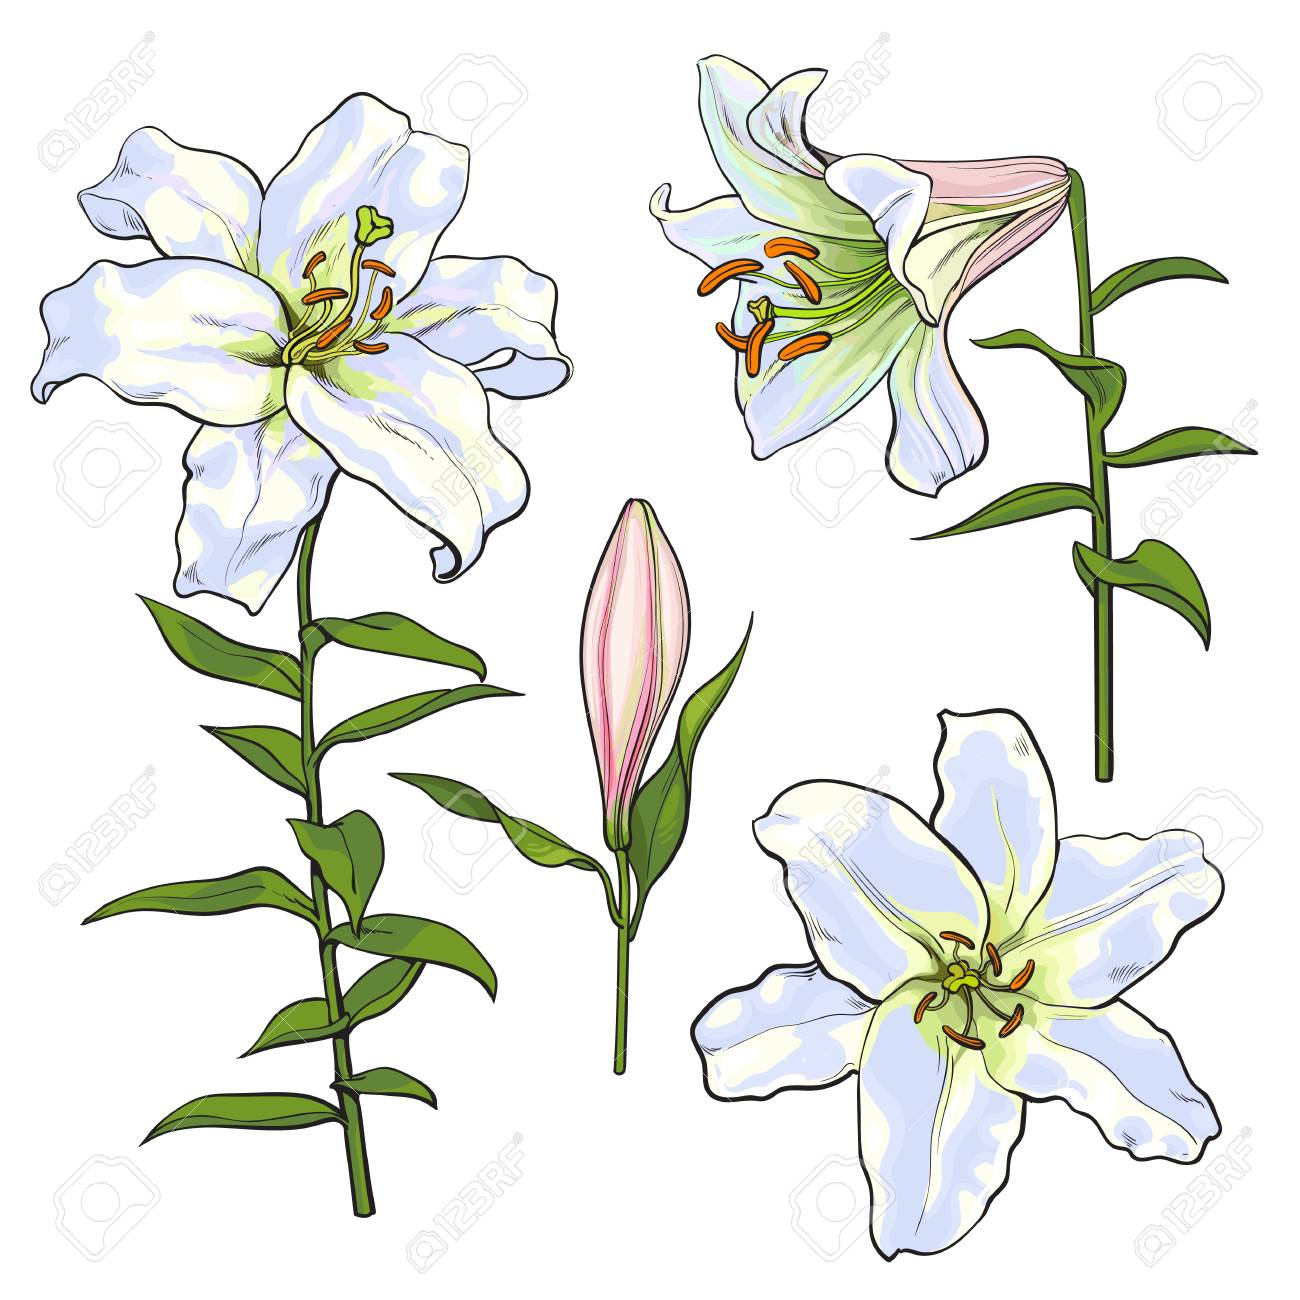 Set of hand drawn white lily flowers in side and top view sketch set of hand drawn white lily flowers in side and top view sketch style vector izmirmasajfo Choice Image